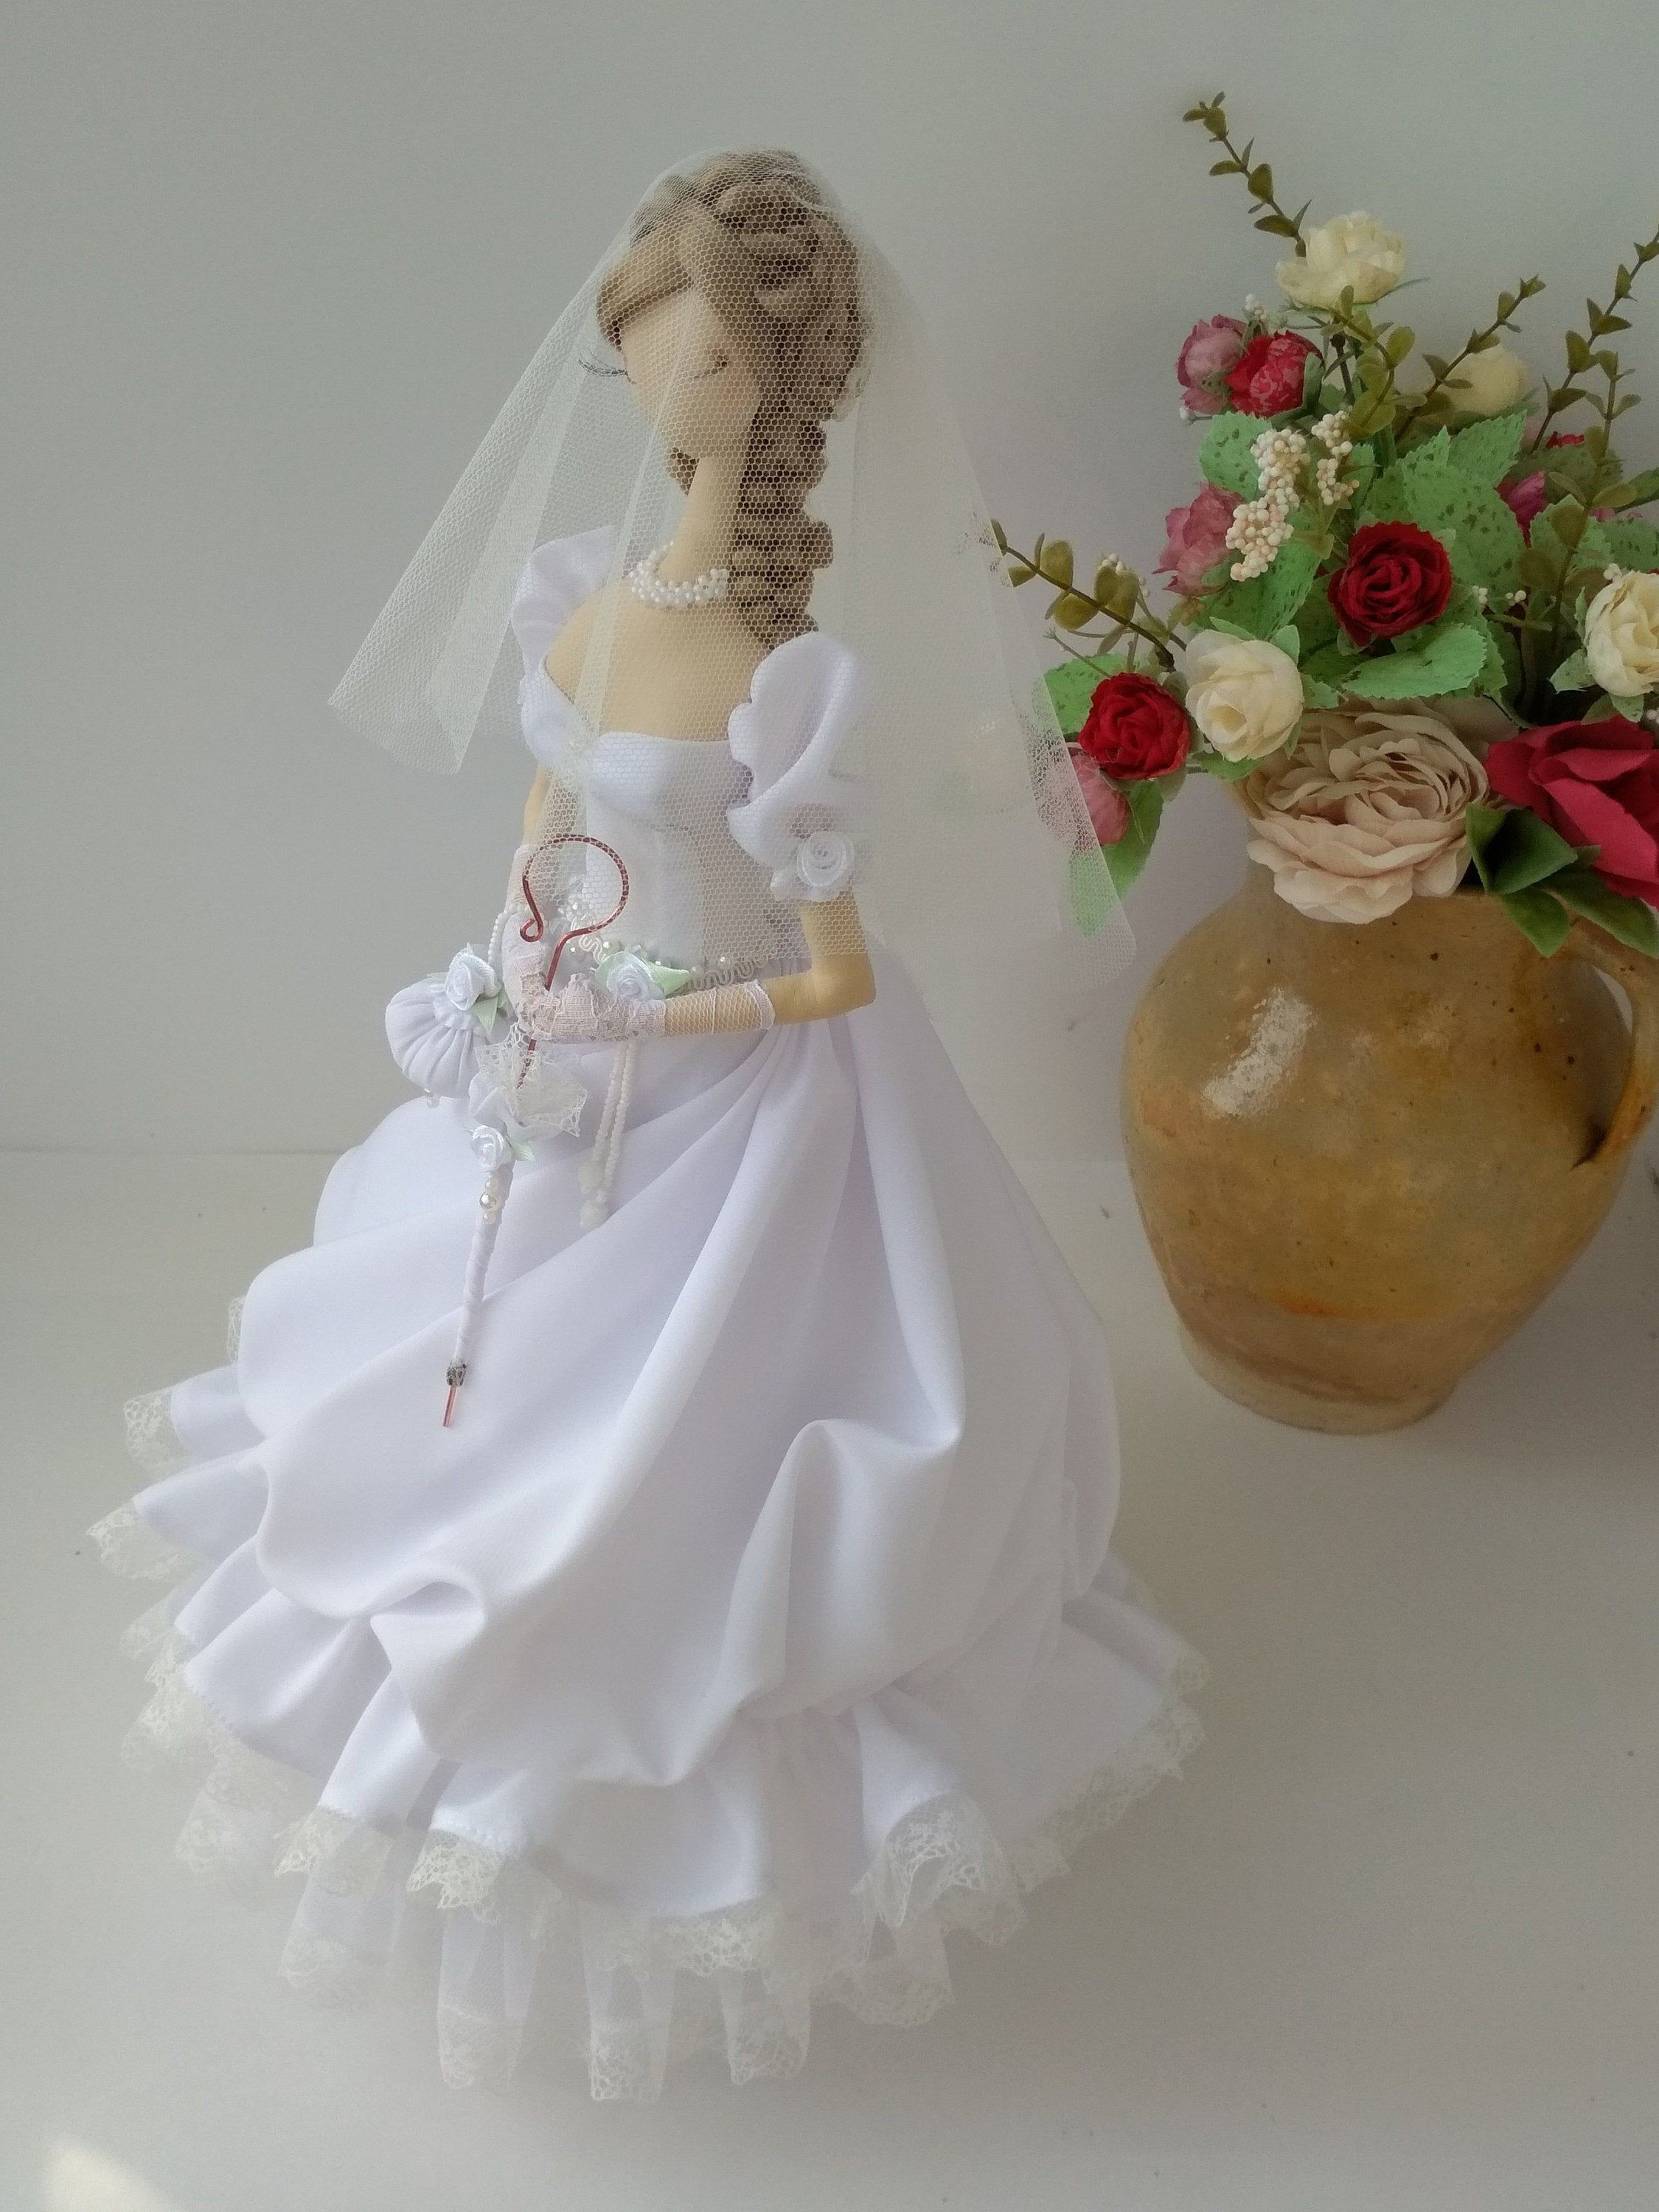 Doll of a bride, Doll in a white dress, Wedding dress, Doll in a wedding dress,Doll in a veil, Textile doll,Rococo style doll, Wedding gift #bridedolls